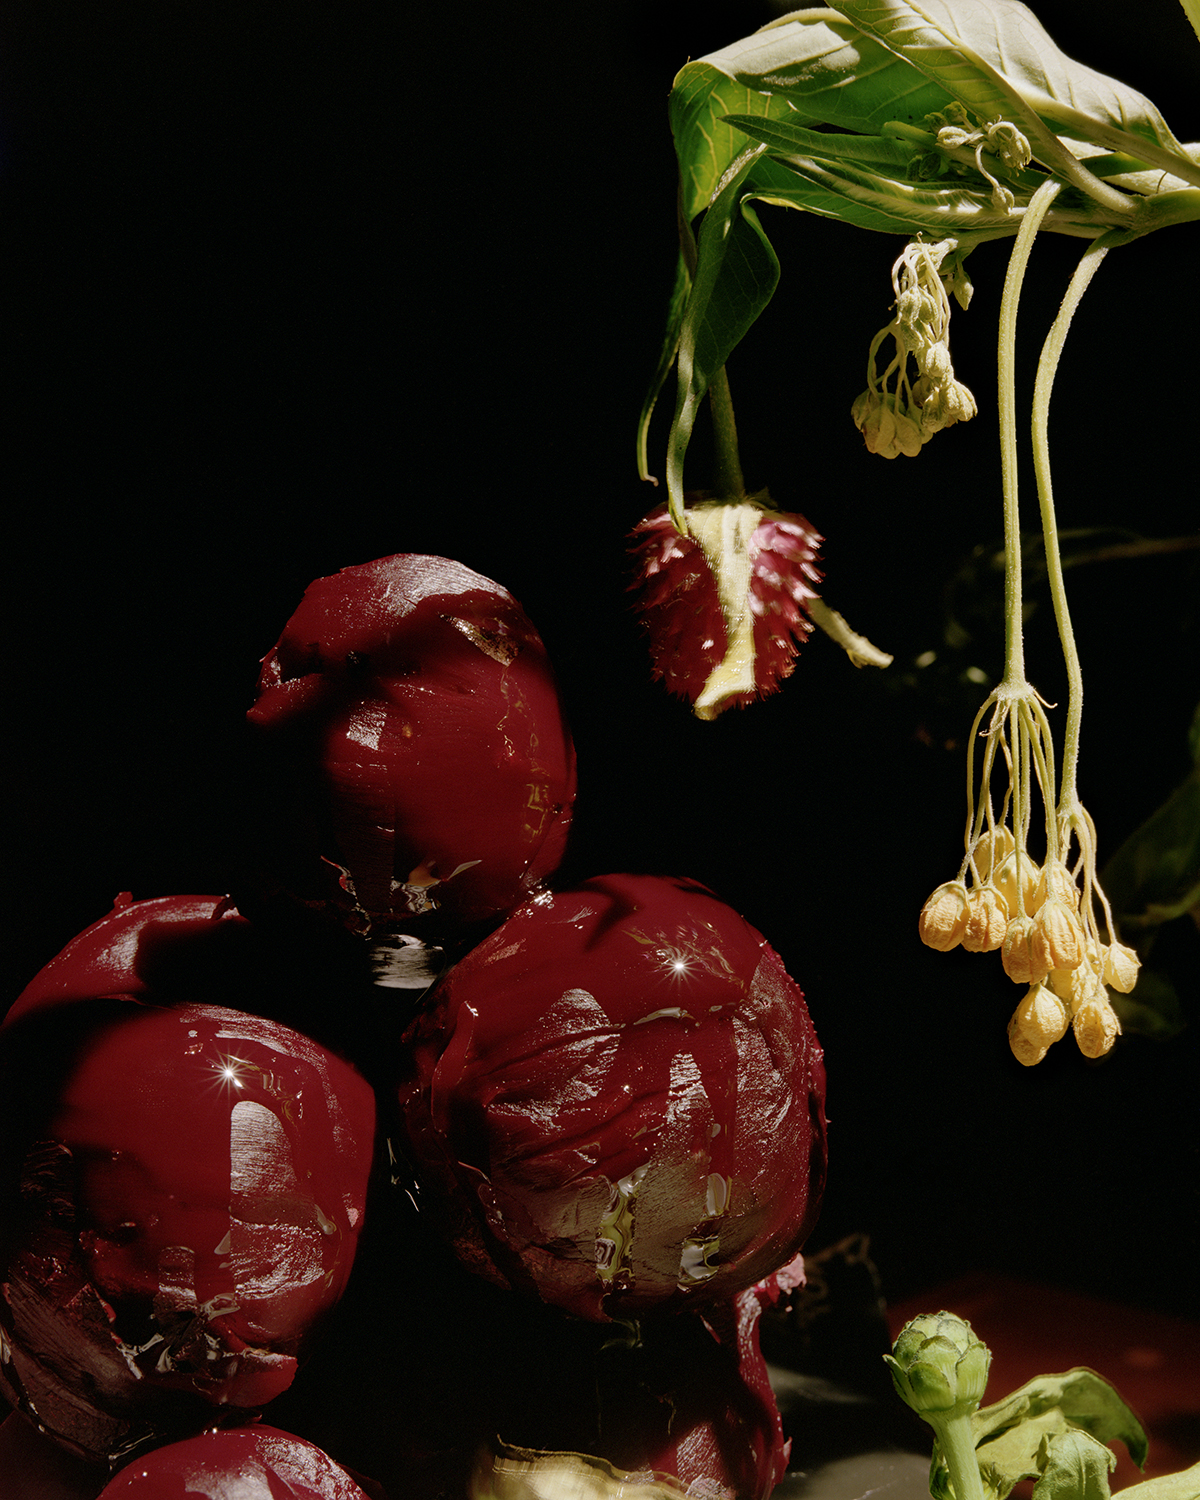 Emma_Ressel_Red_beets_and_olive_oil.jpg